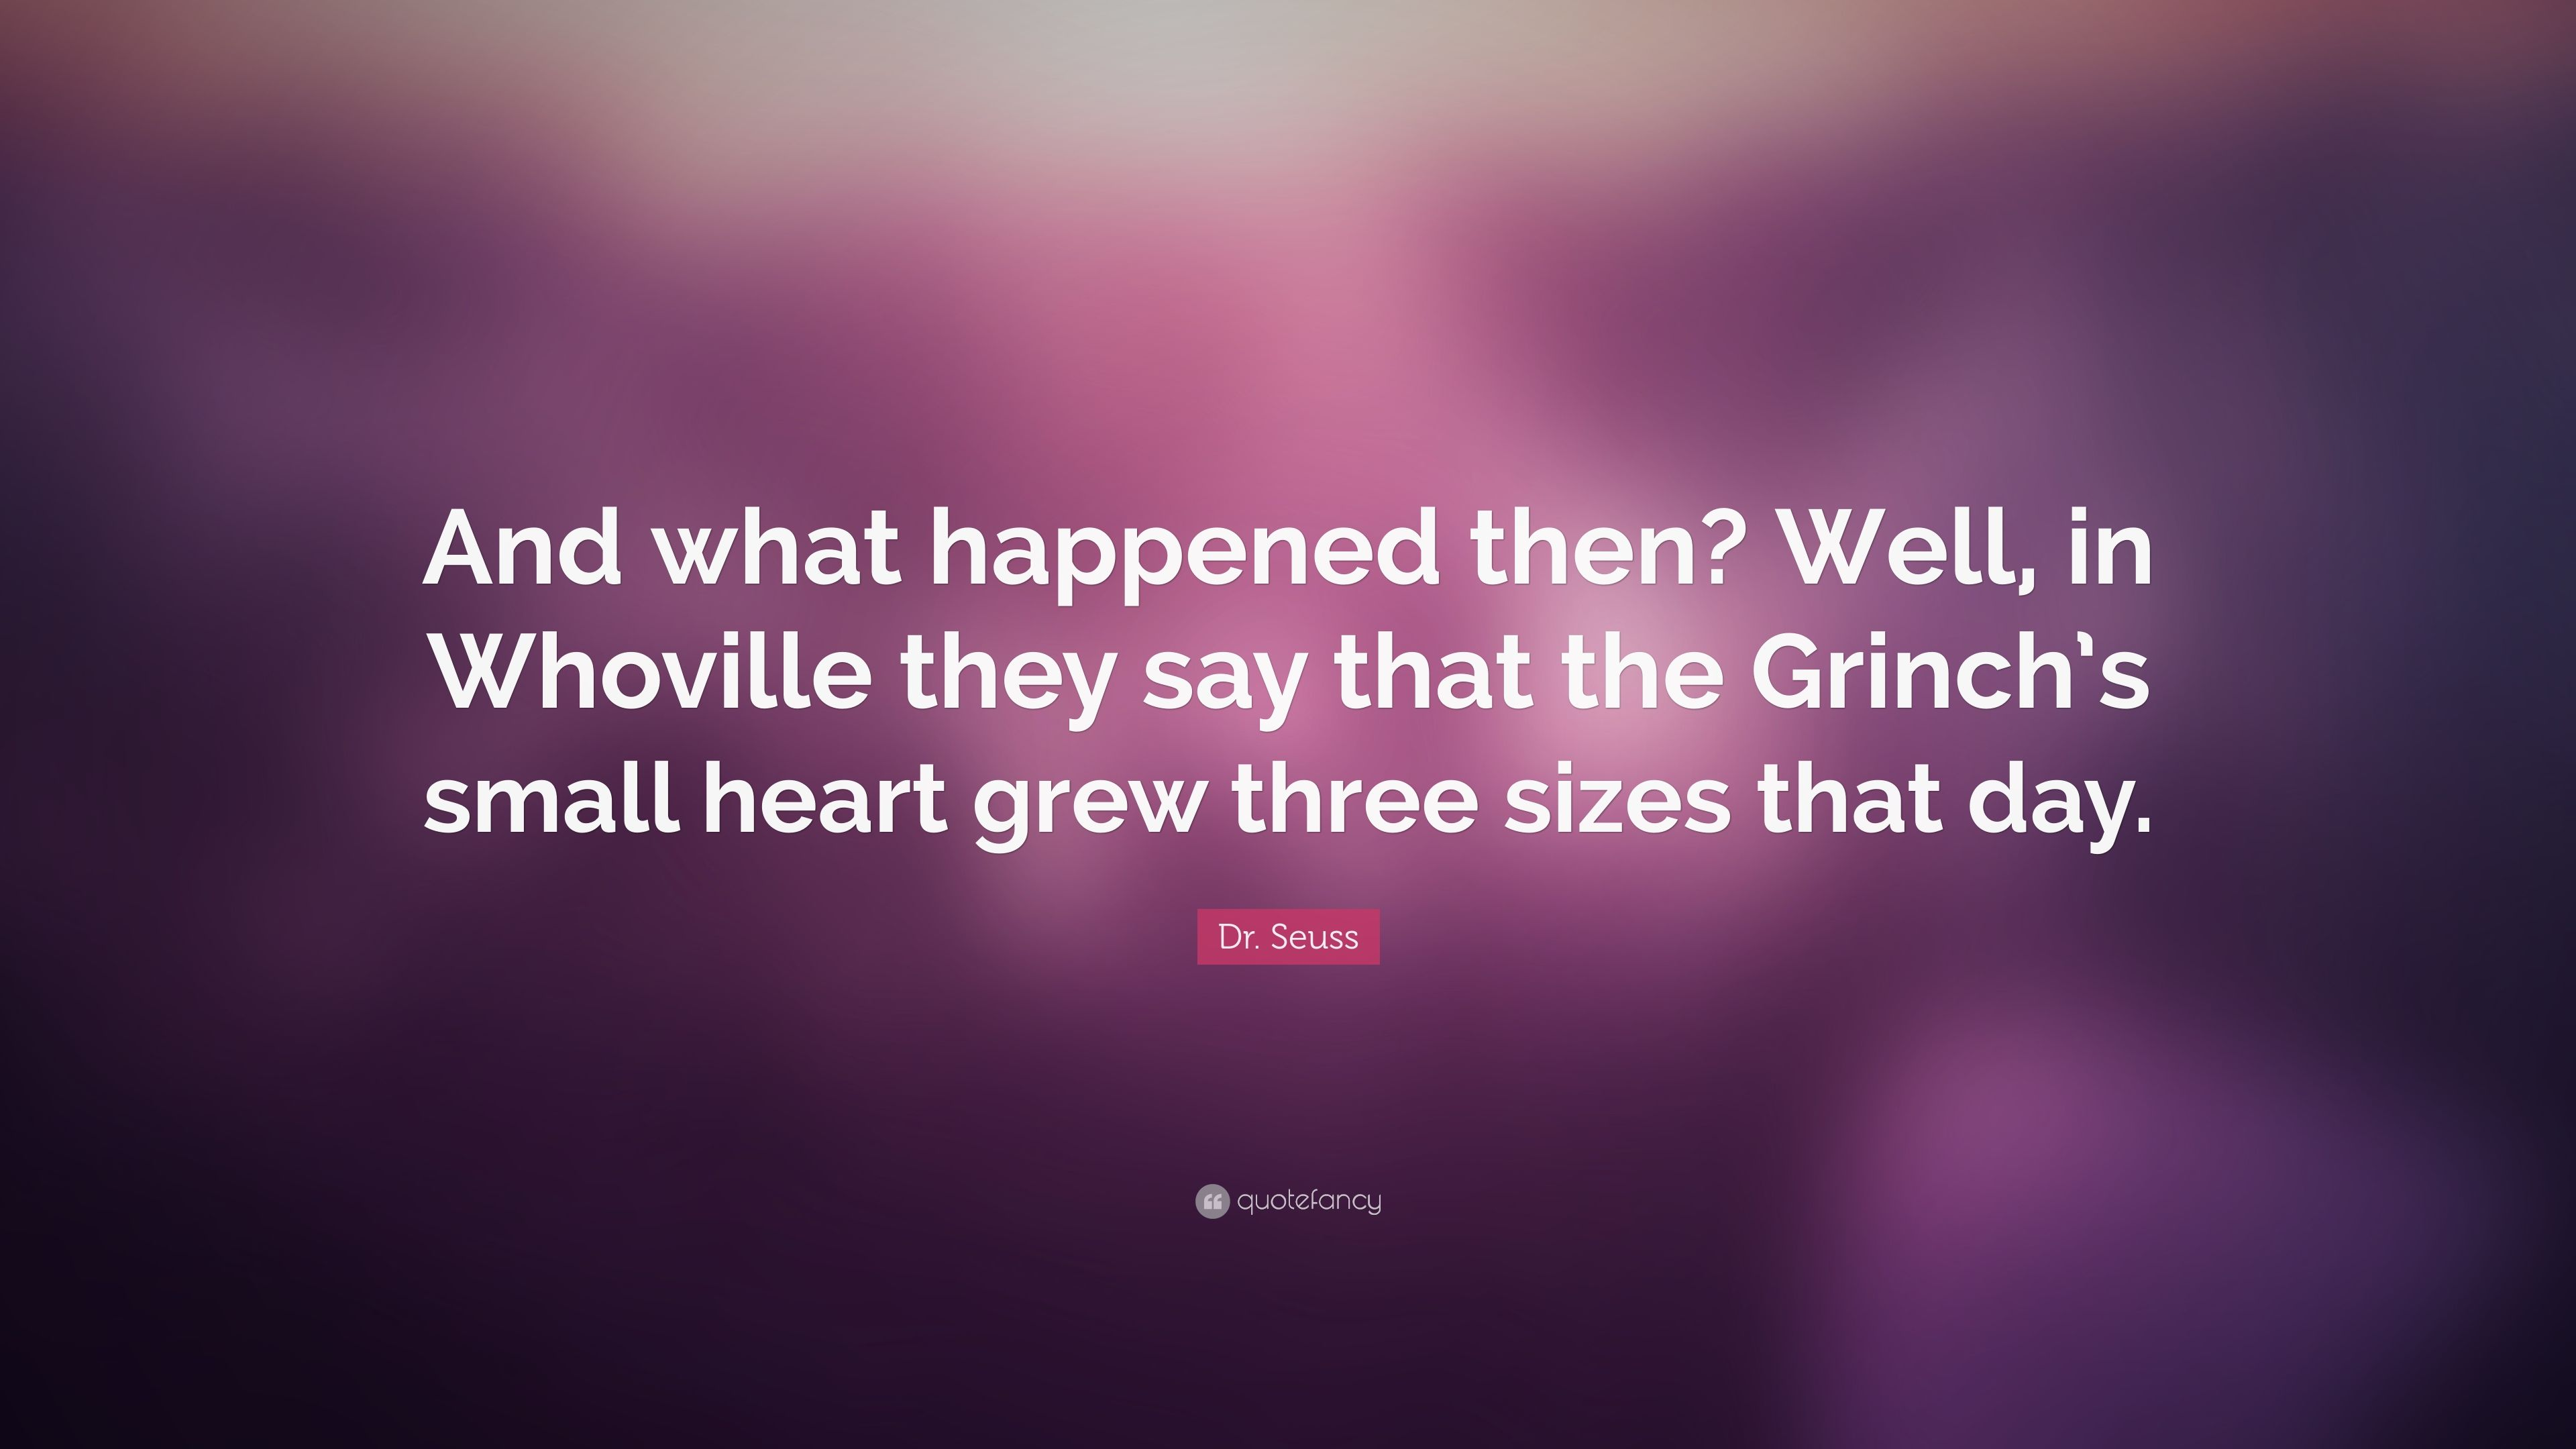 Dr Seuss Quote And What Happened Then Well In Whoville They Say That The Grinch S Small Heart Grew Three Sizes That Day 10 Wallpapers Quotefancy